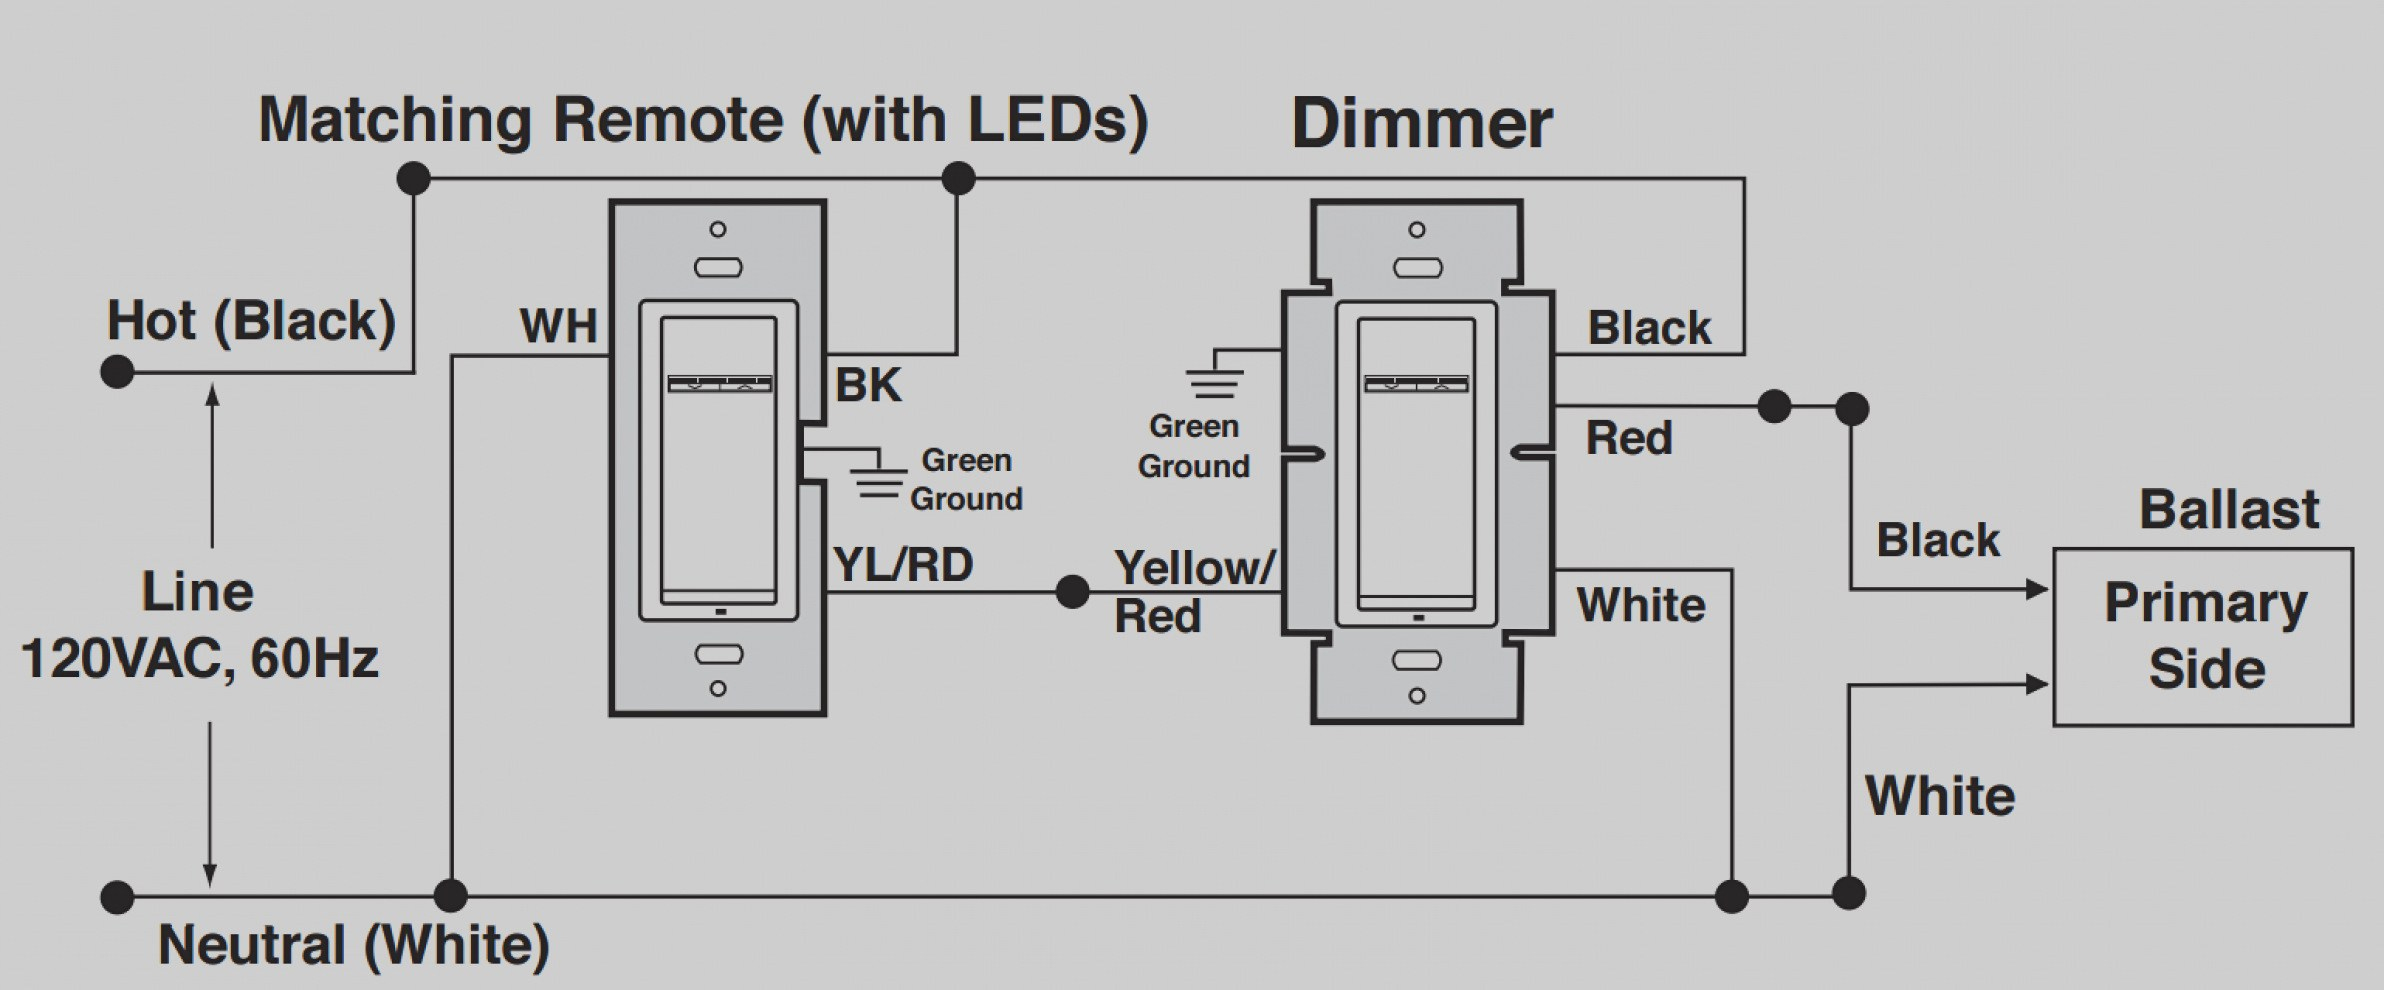 Lutron Dimmer Switch Wiring Diagram from 2020cadillac.com